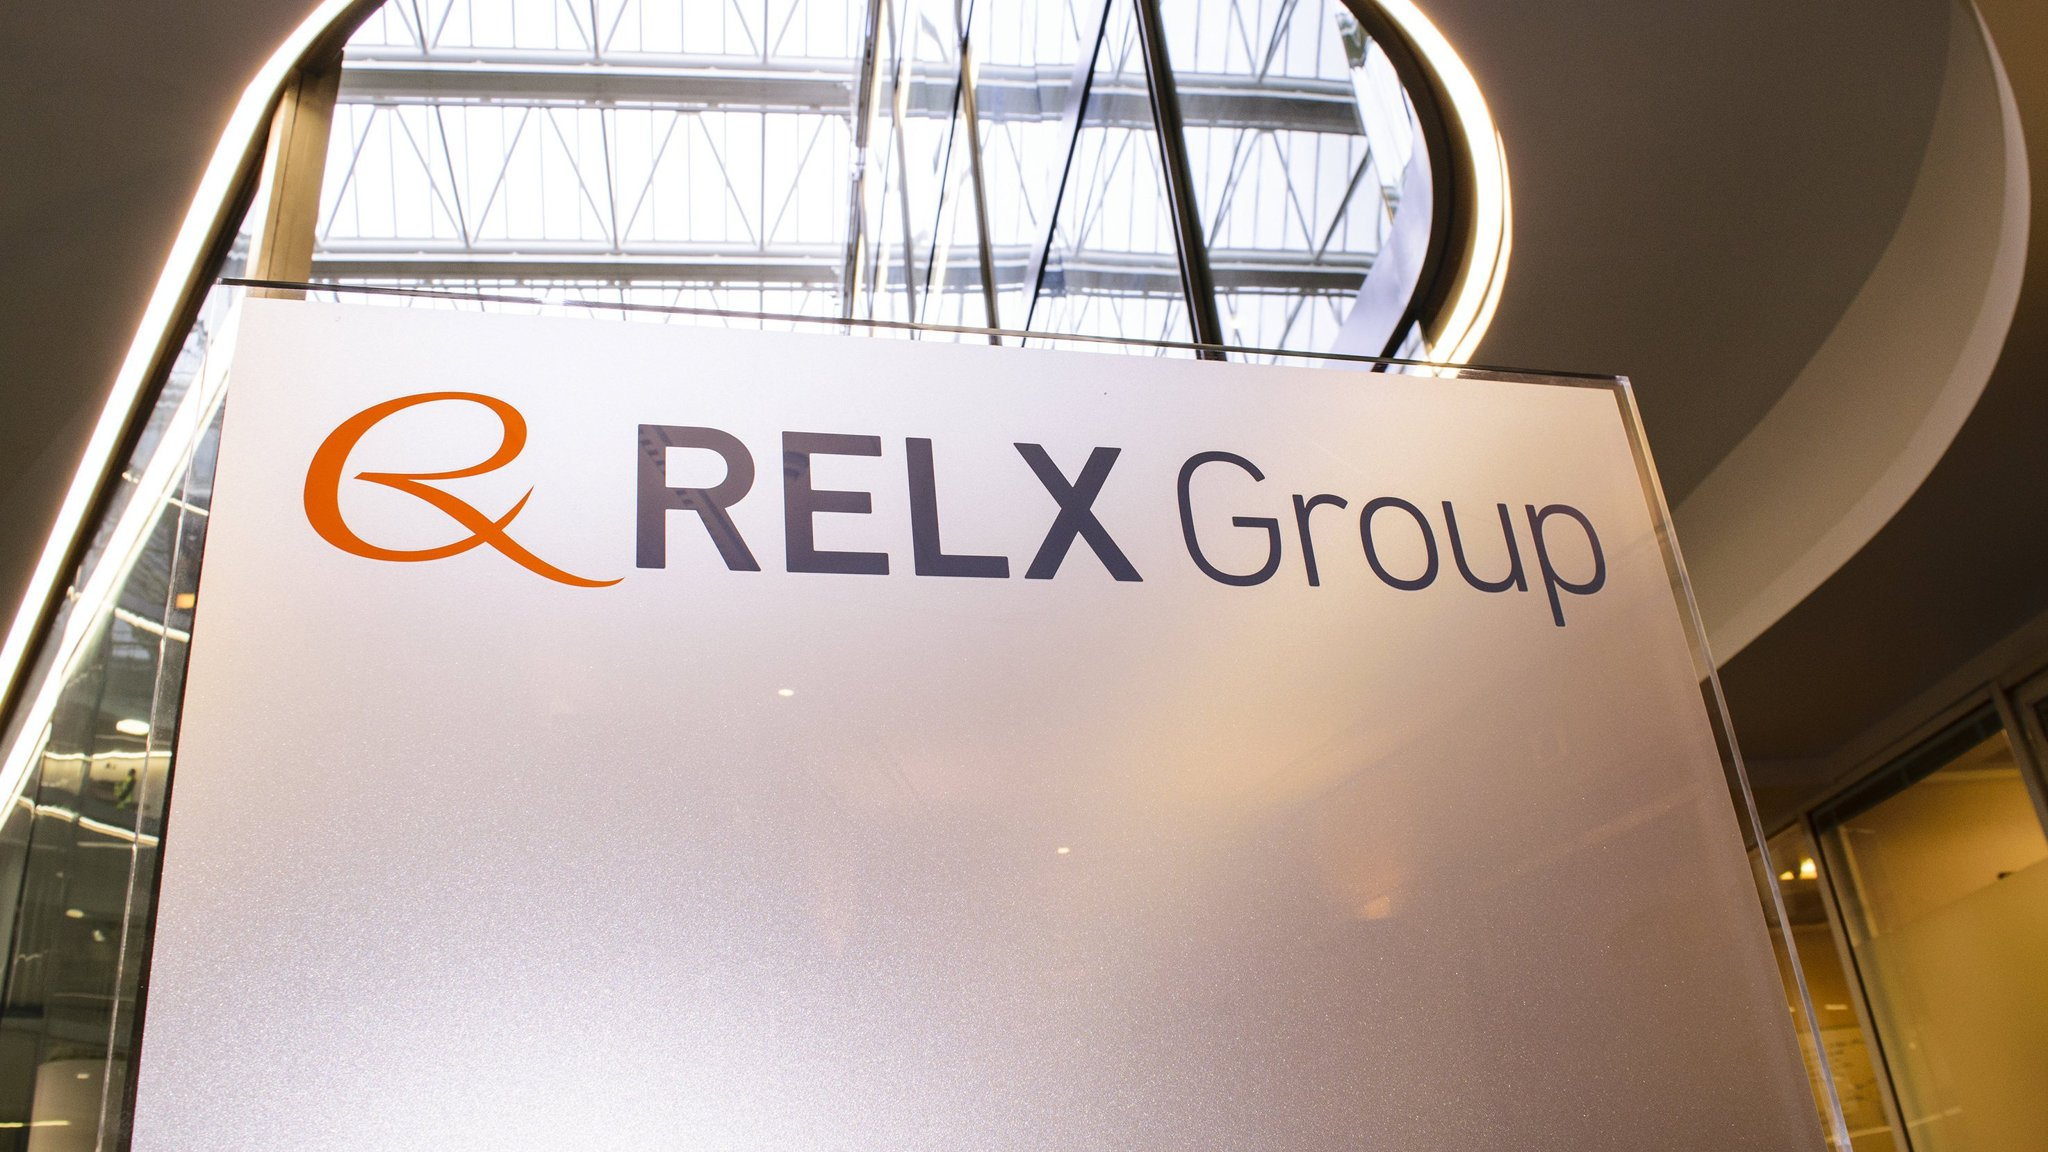 Relx logo and branding on a banner in a building